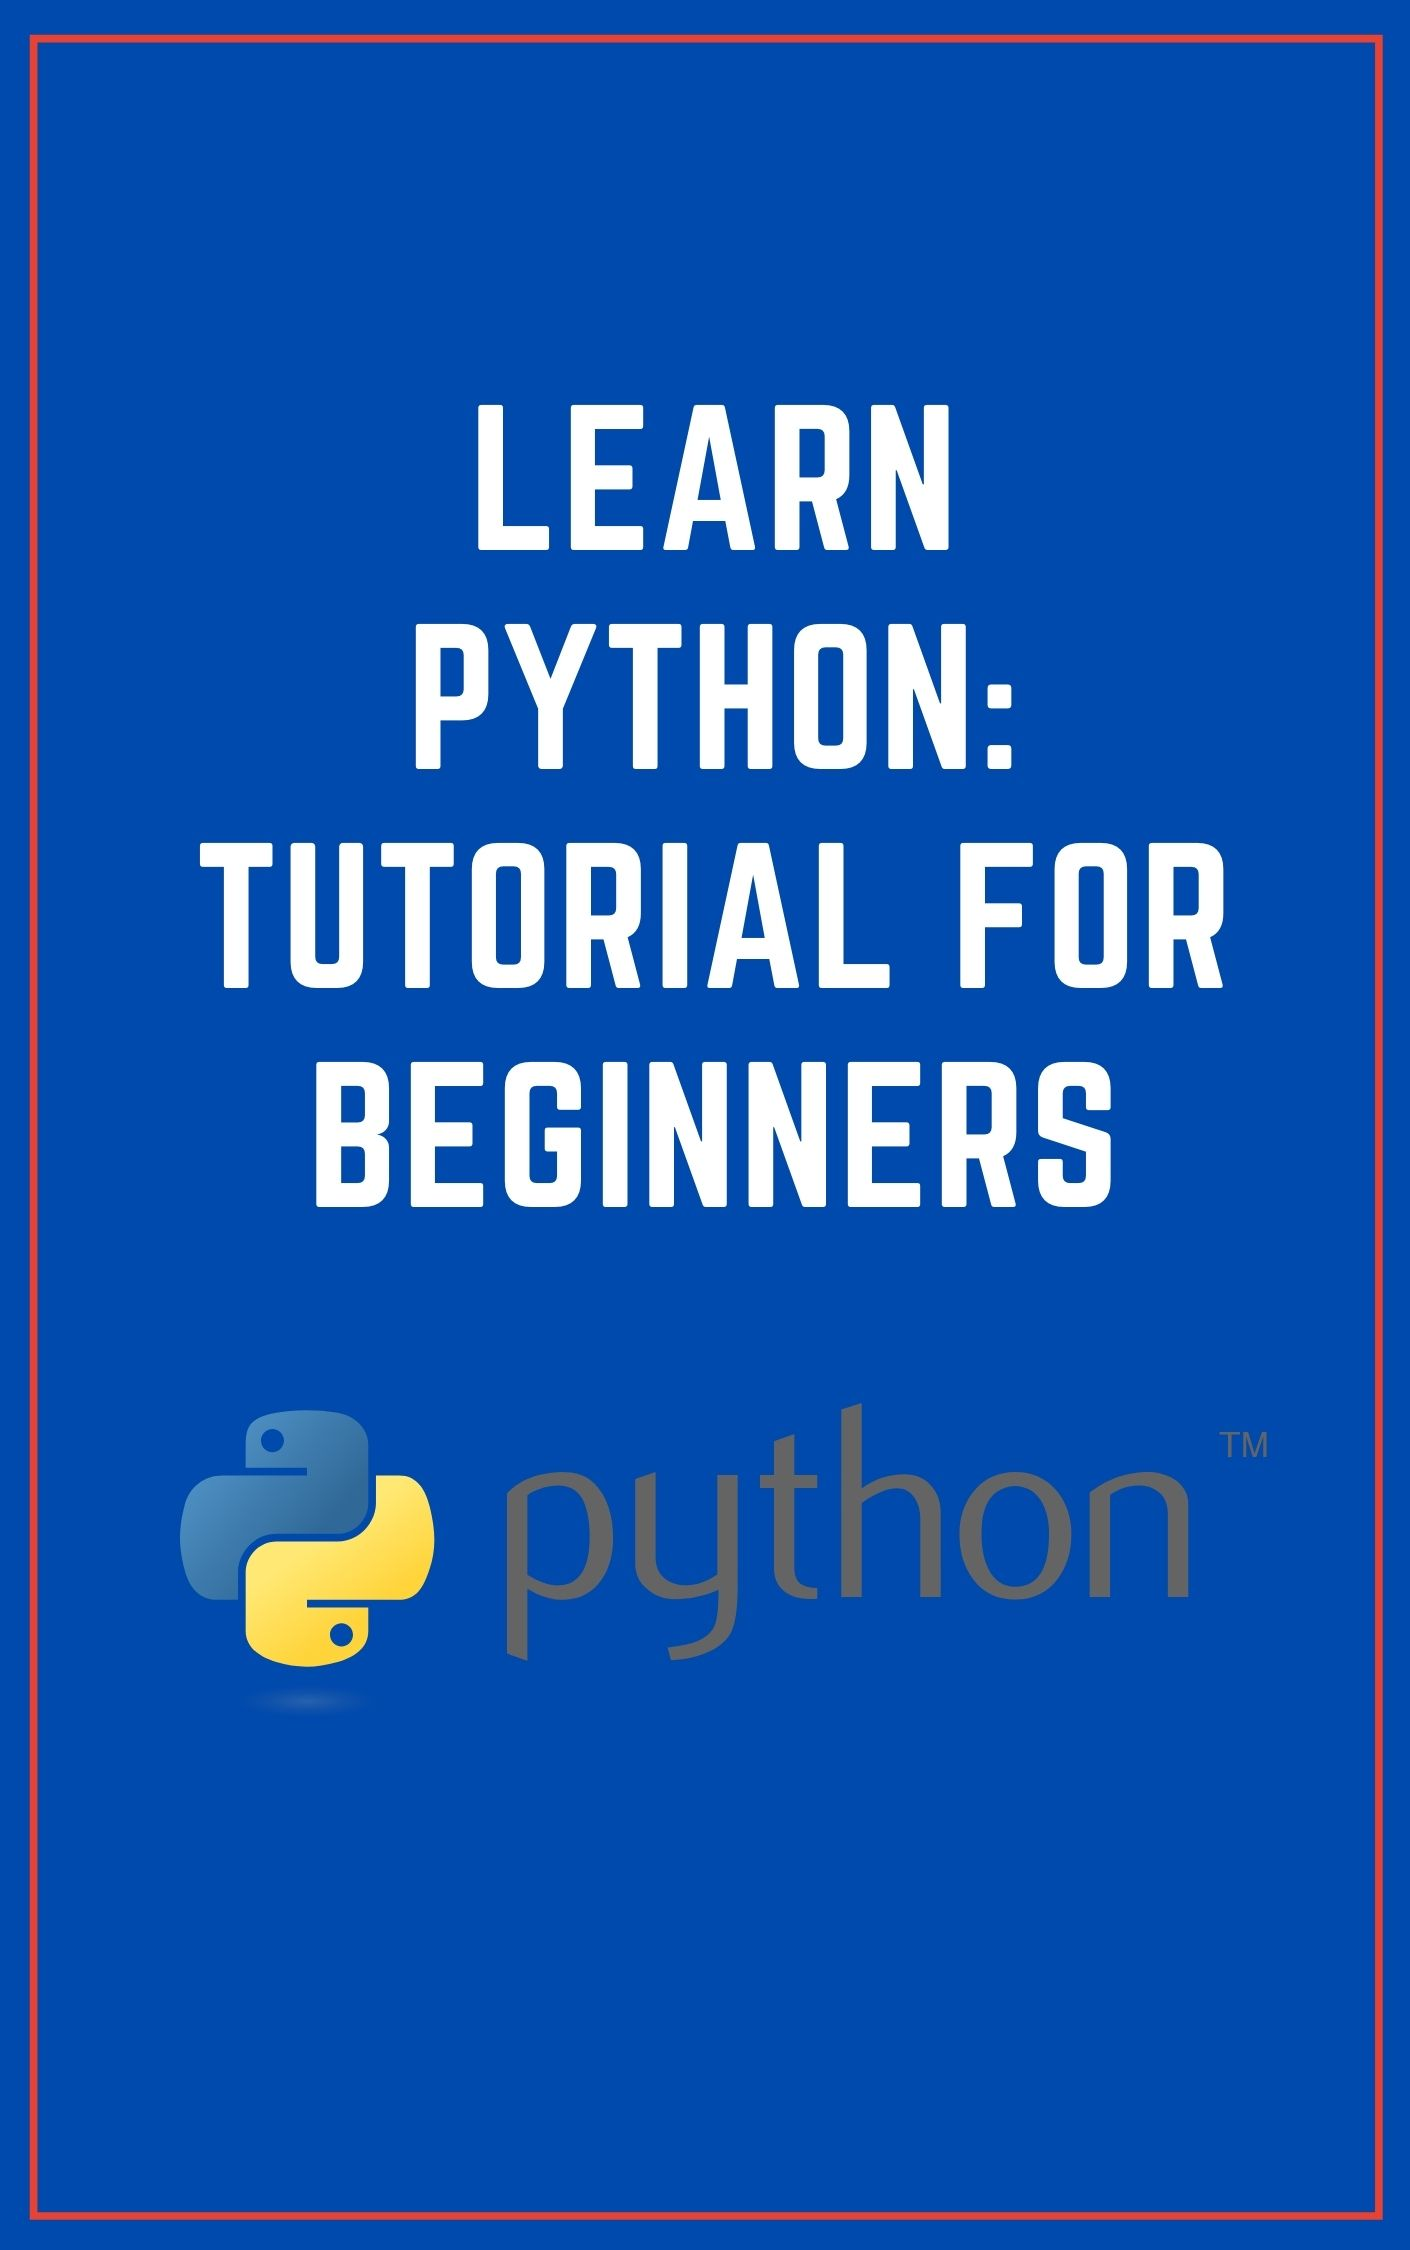 Python for Absolute Beginners – Everything You Need to Program in Python